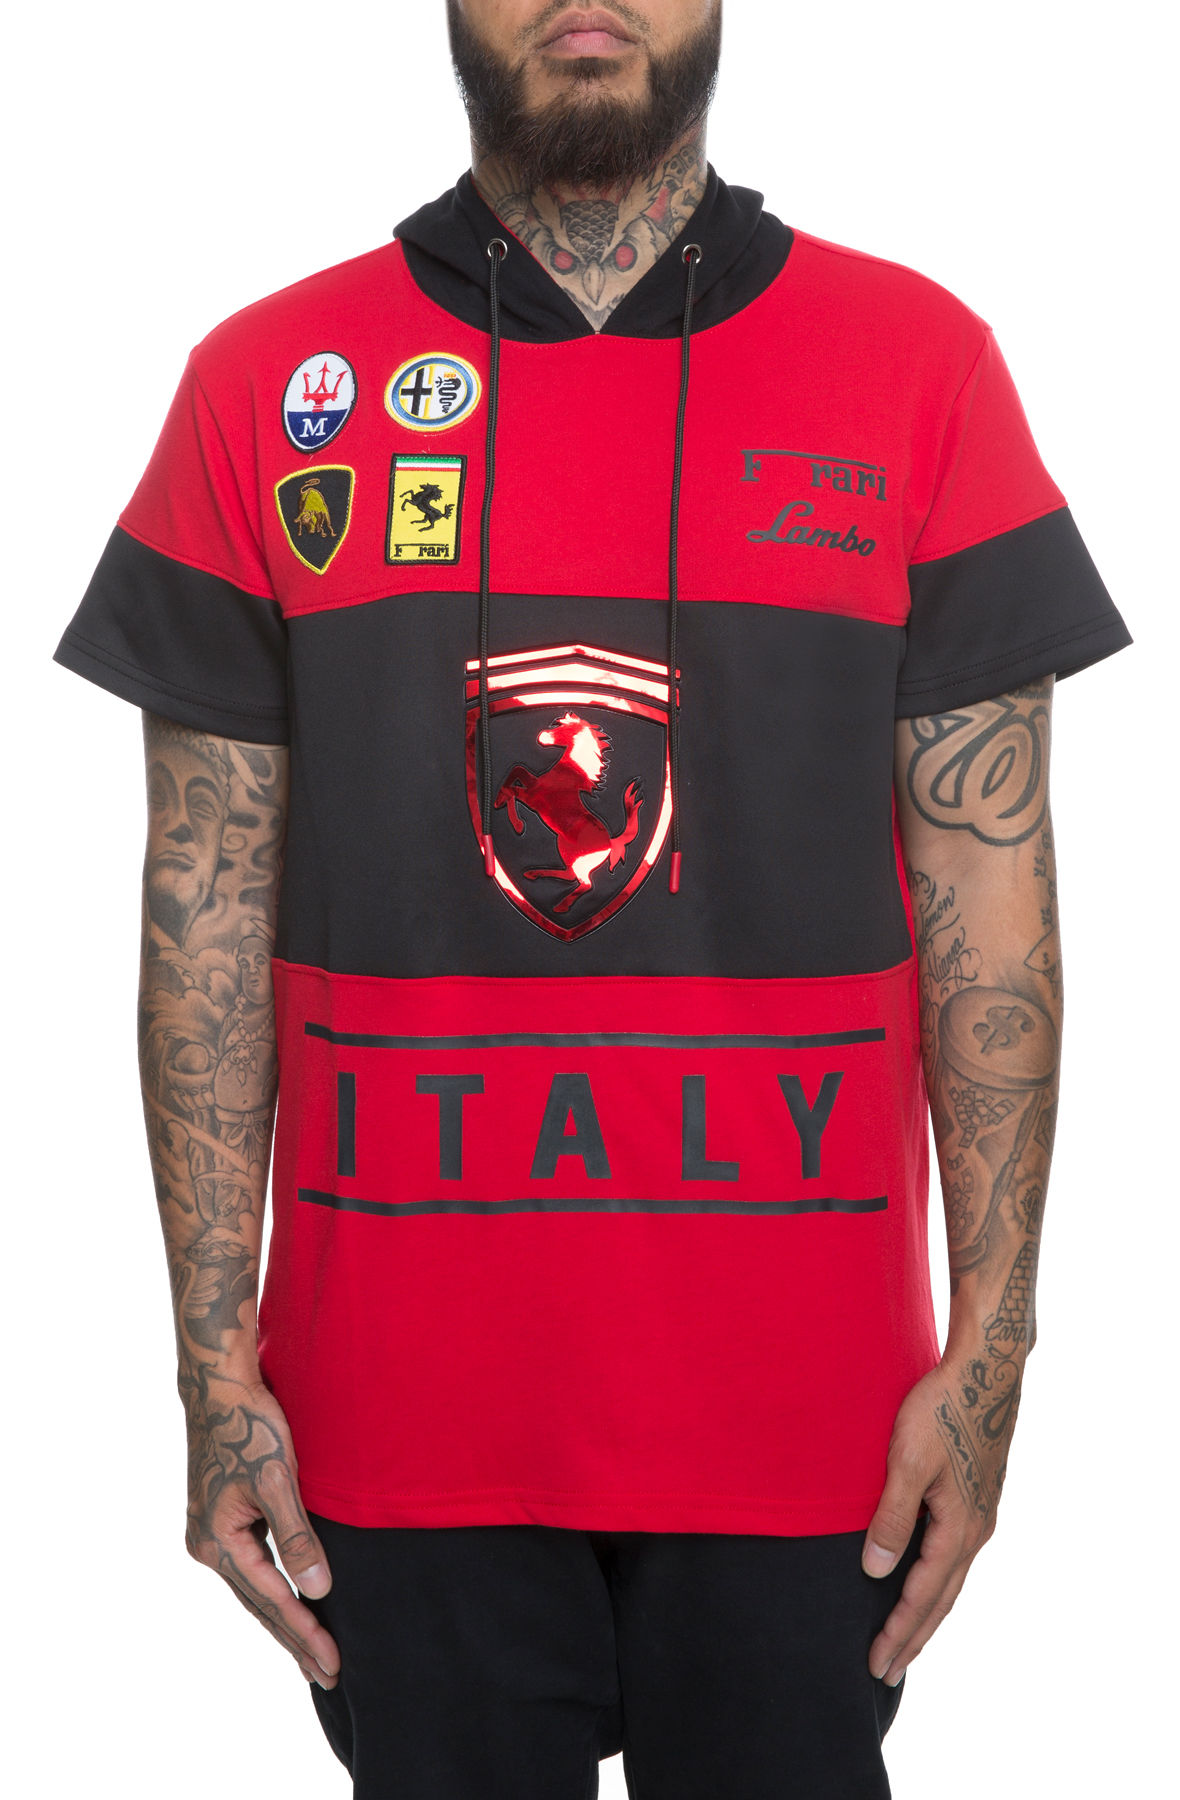 Image of The Italia Motorsports Hoodie in Red